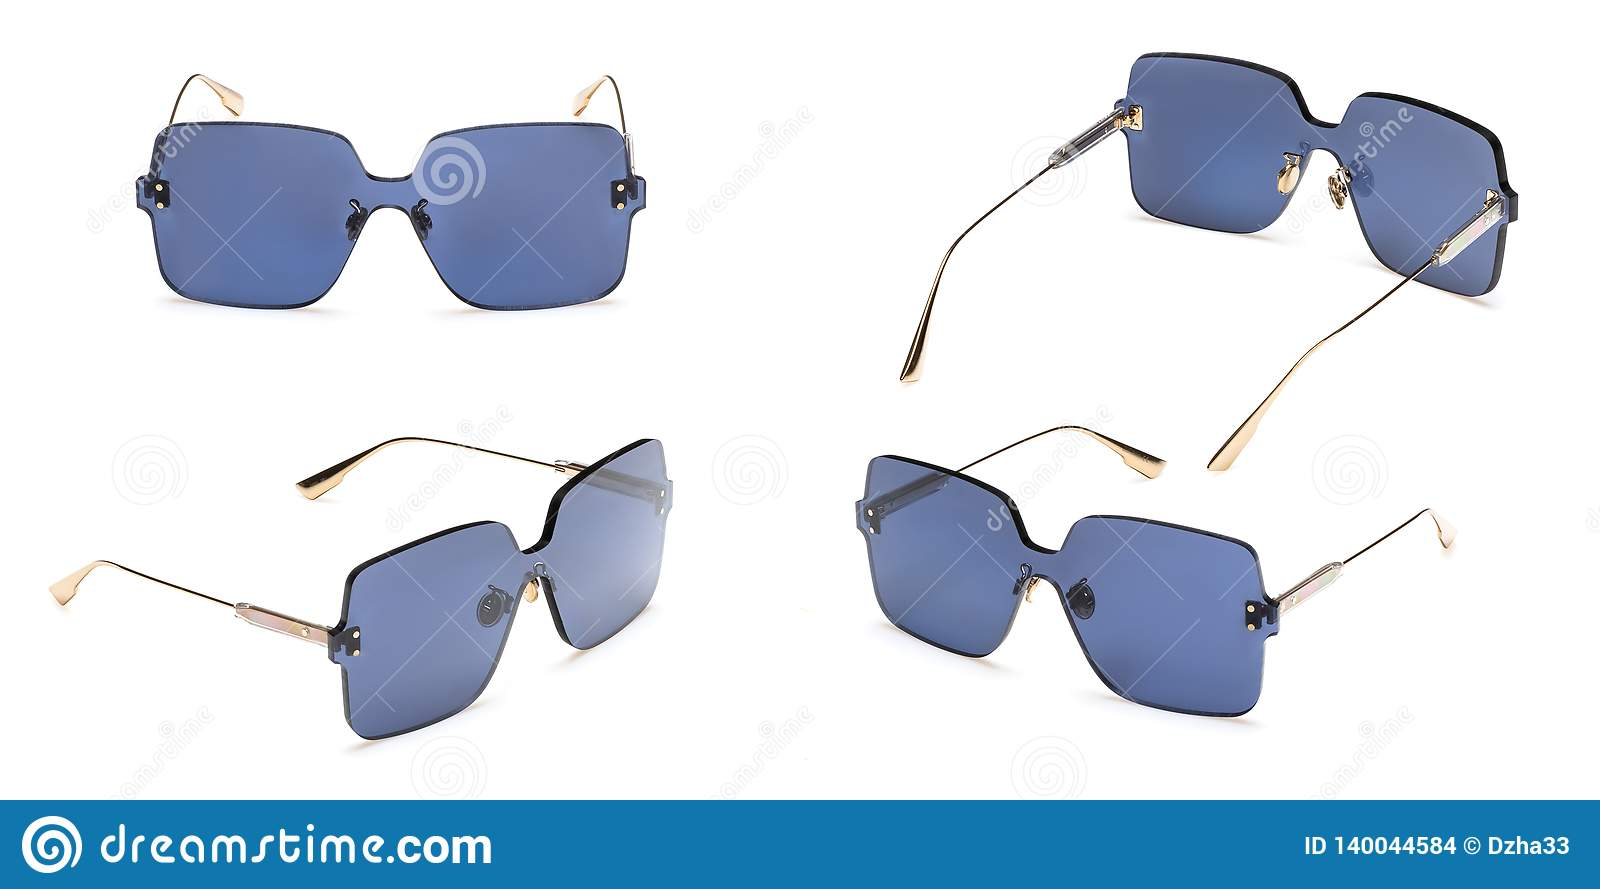 Metal sunglasses with polarizing blue Mirror Lens isolated on white background. Fashionable summer eye glasses collection